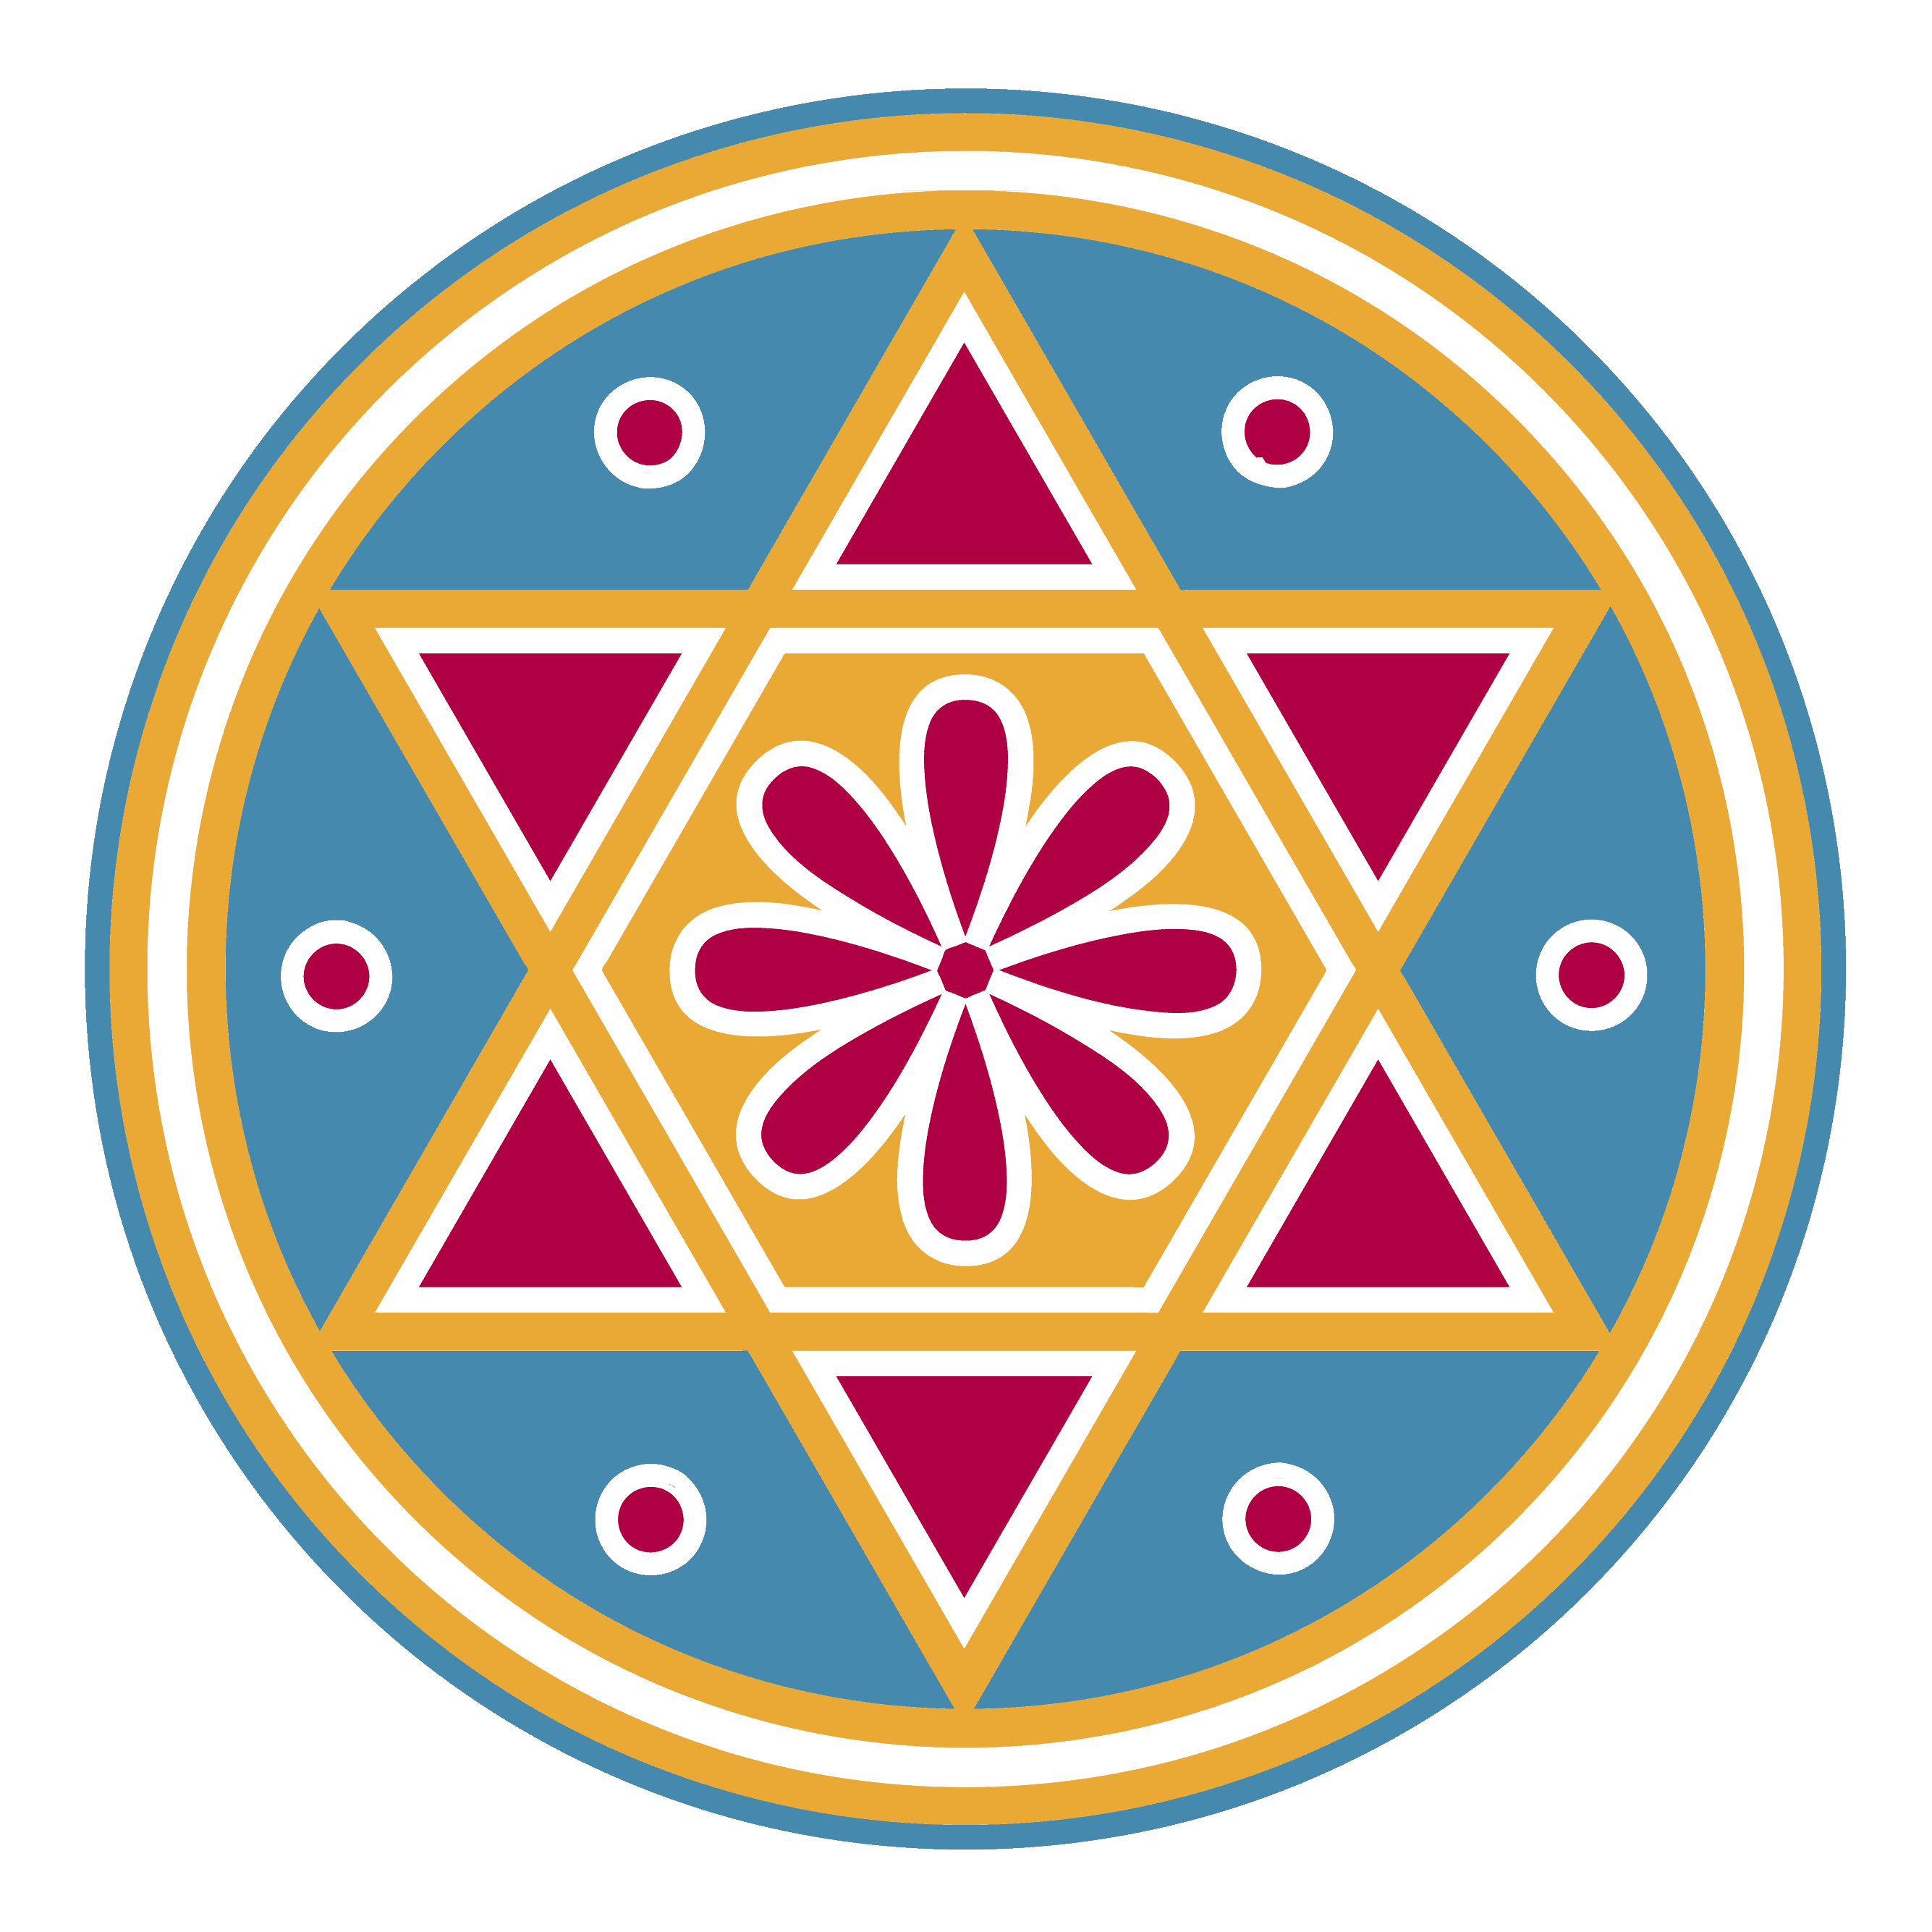 Seal of Solomon Meaning and Symbolism Explained, a Colored Illustration